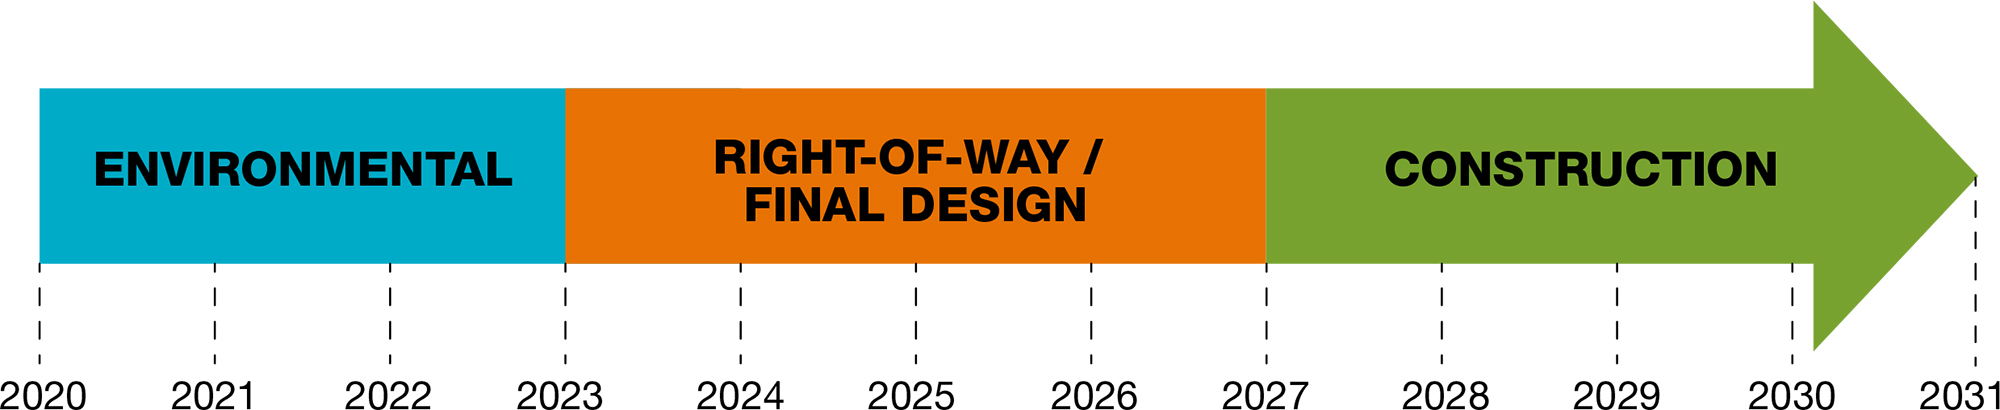 Environmental Process 2020-2023, Right-of-way/Final Design Process 2023-2027, Construction Process 2027-2031.